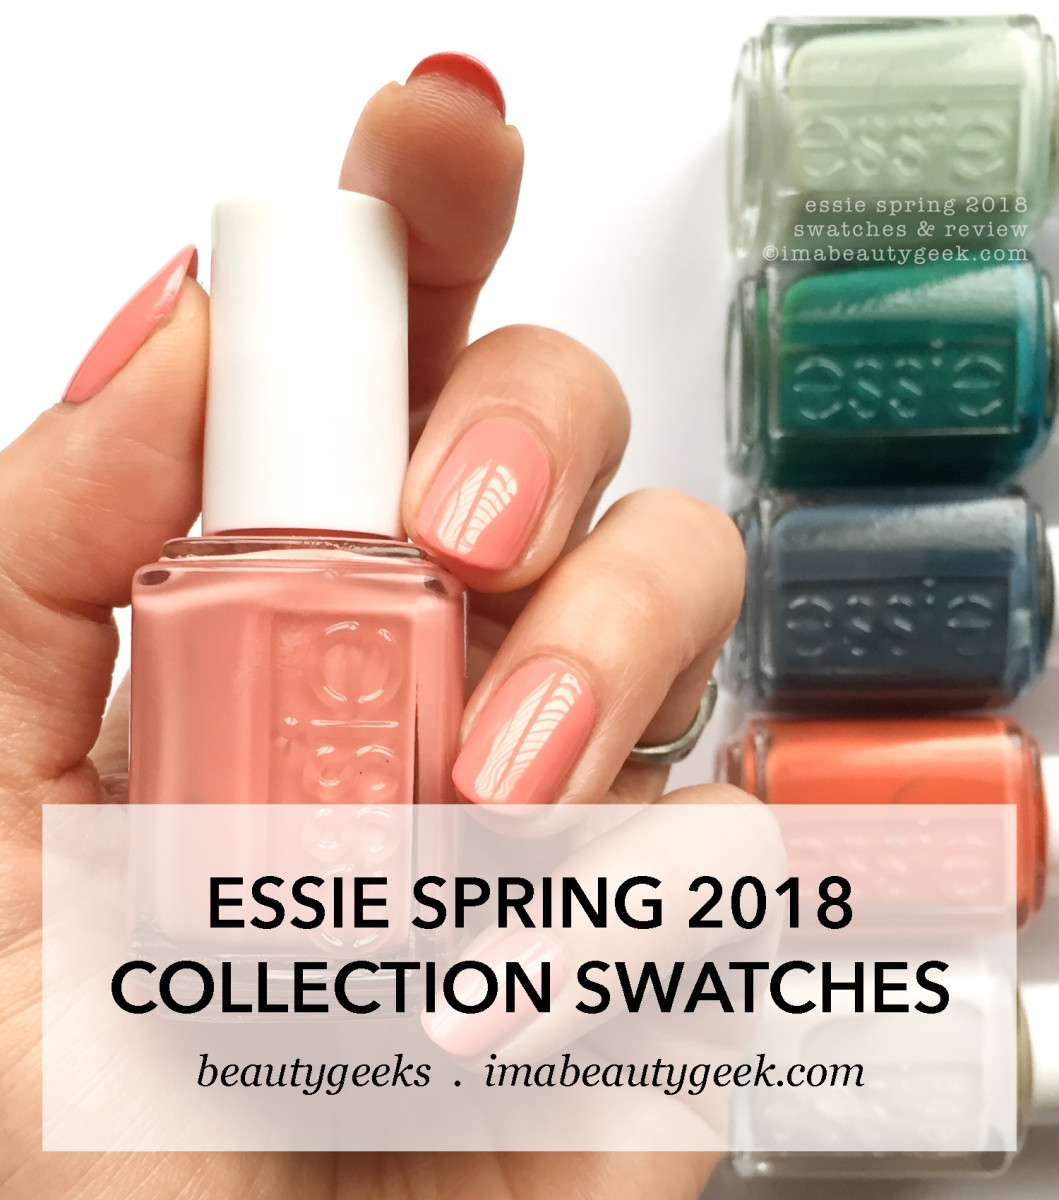 Essie Spring 2018 Collection Swatches Review Manigeek